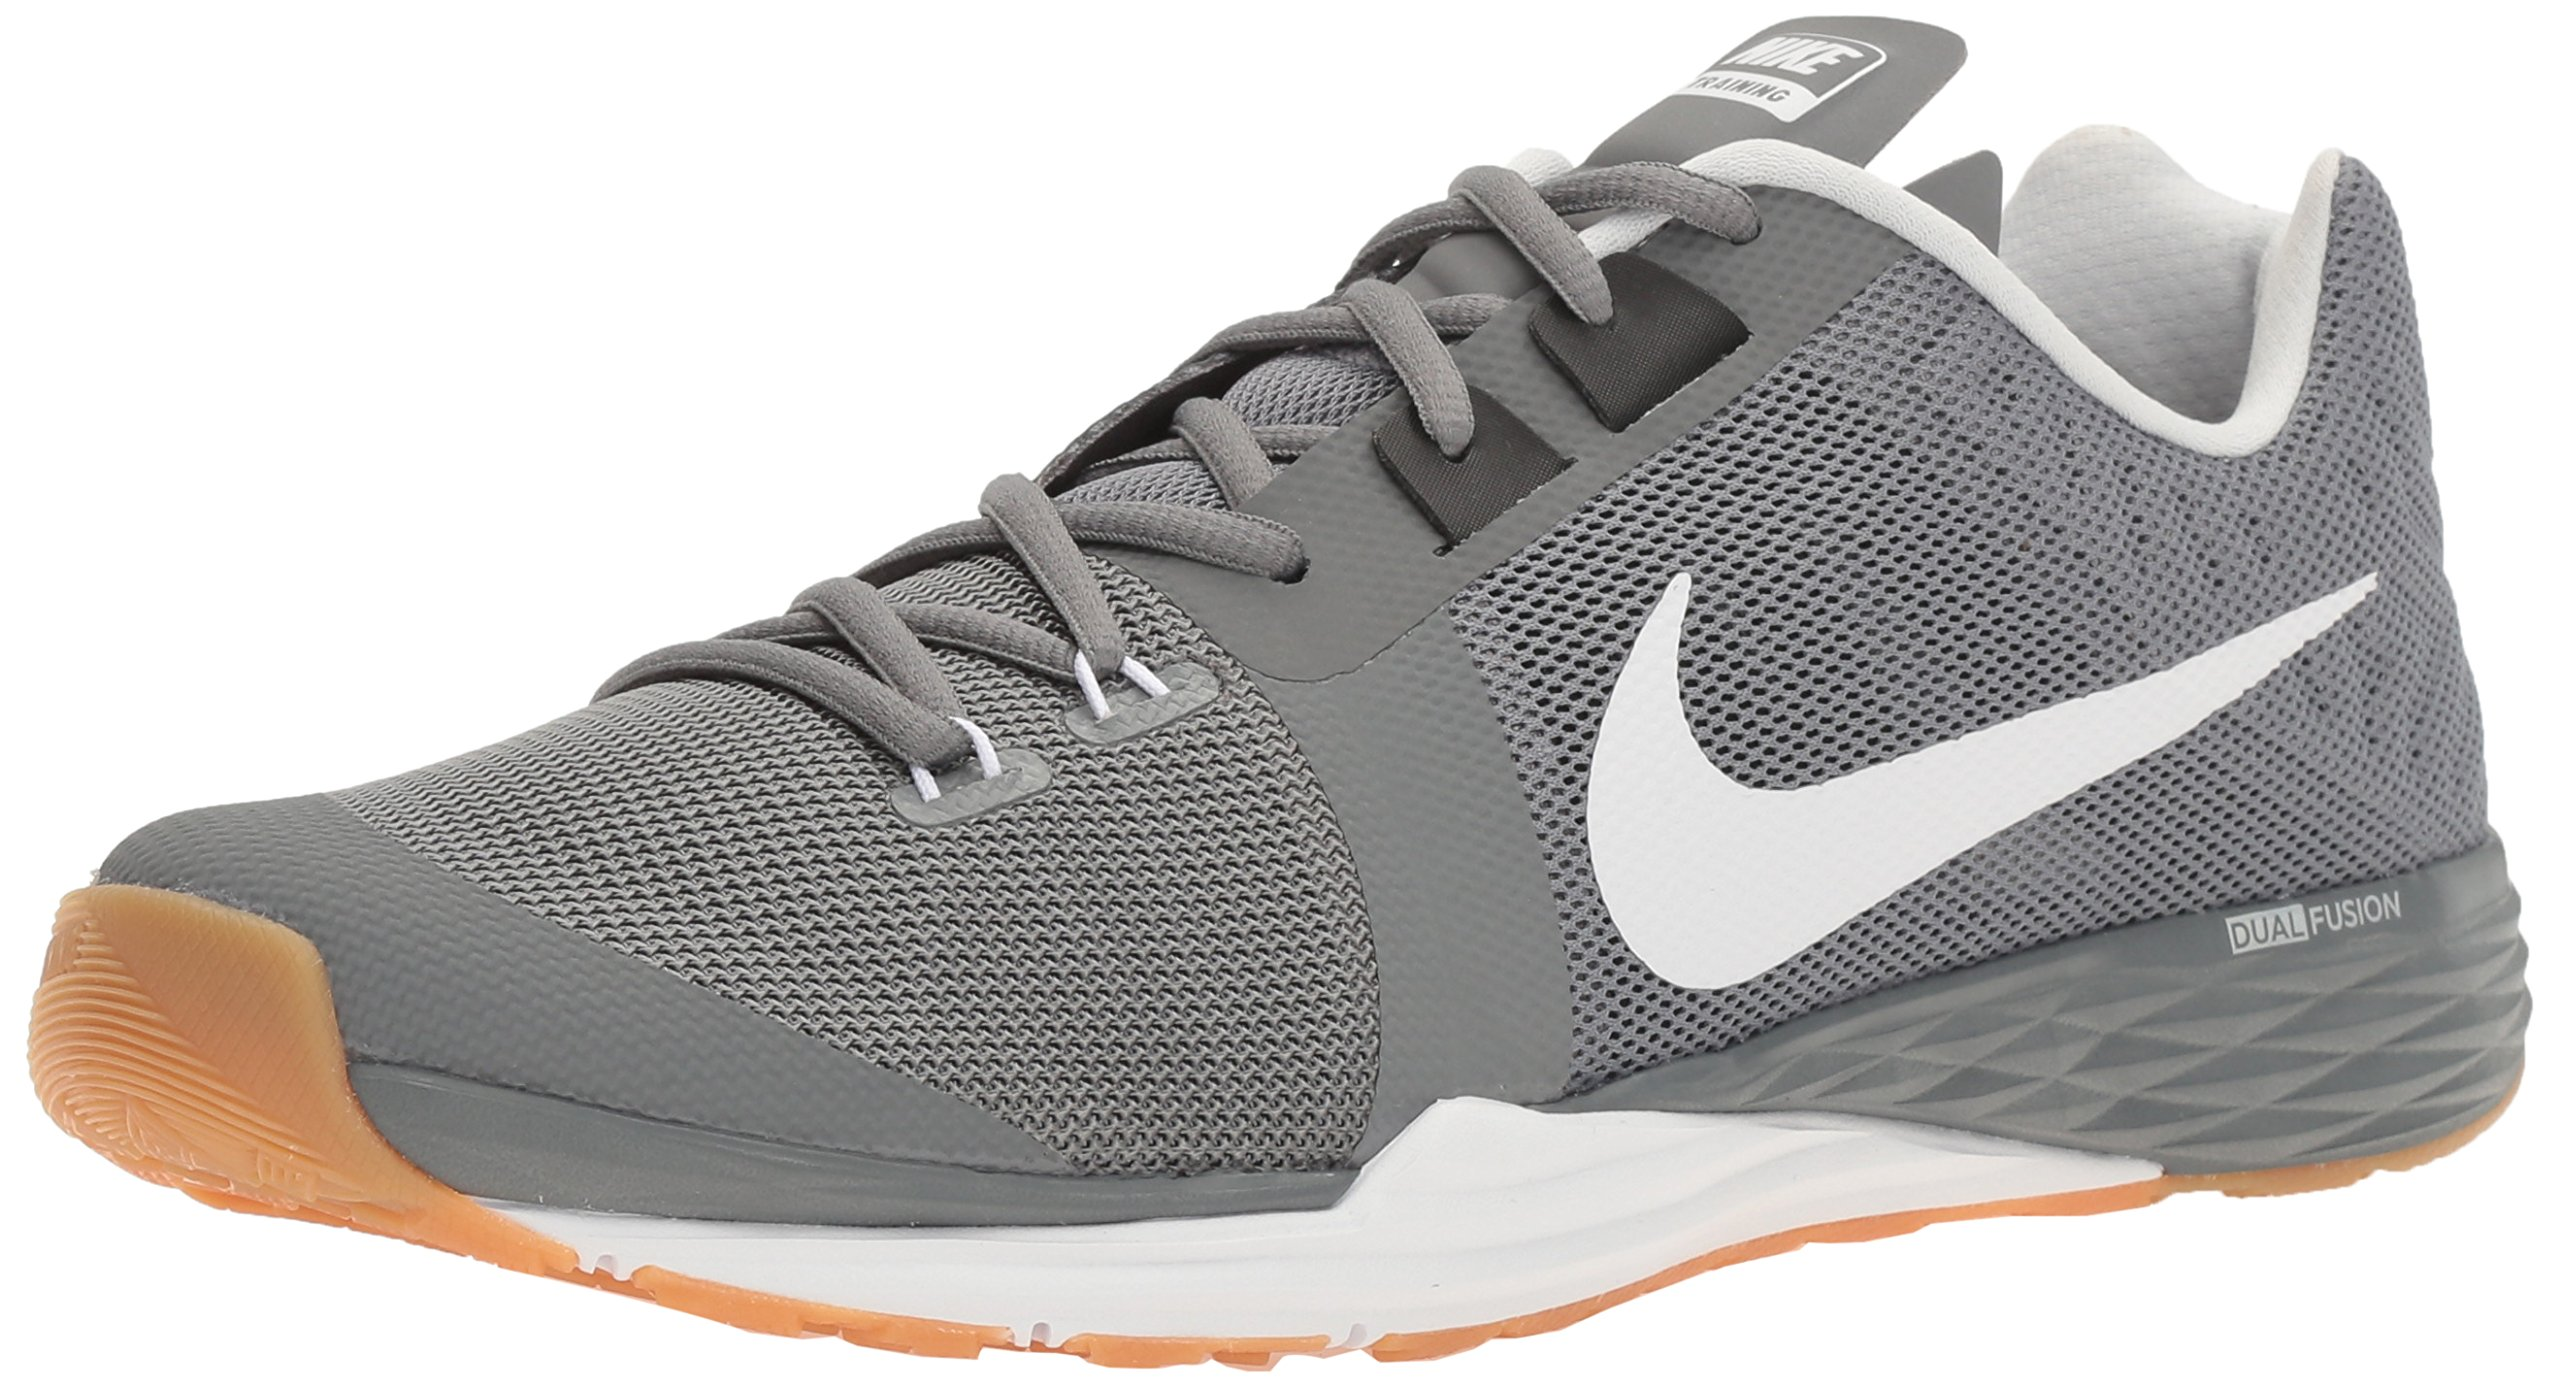 detailed look 20322 1527d Galleon - NIKE Men s Train Prime Iron DF Cross Training Shoe, Cool  Grey White Black Pure Platinum, 7 D(M) US